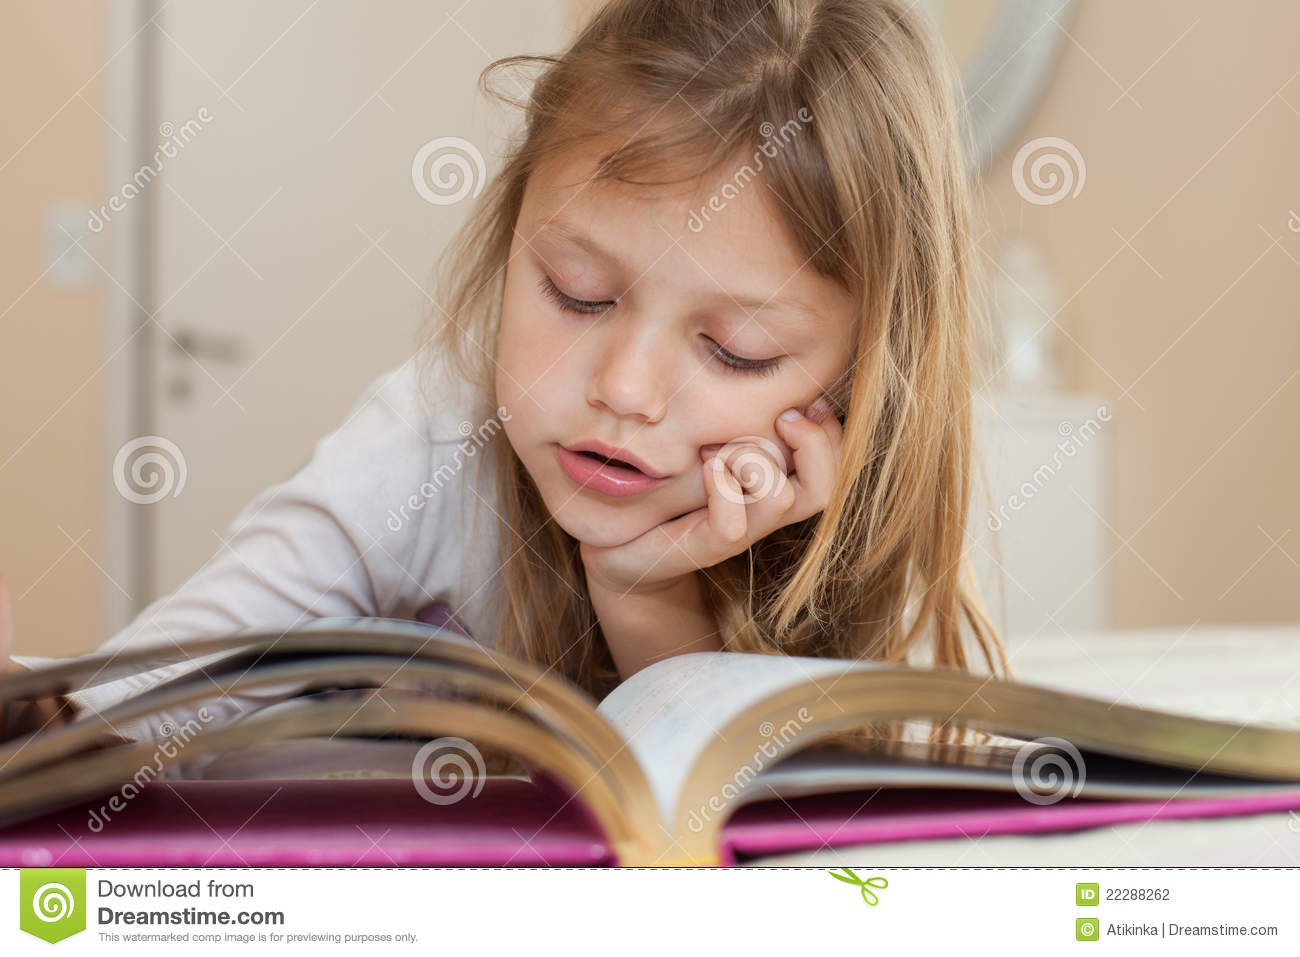 Portrait of a little girl reading a book